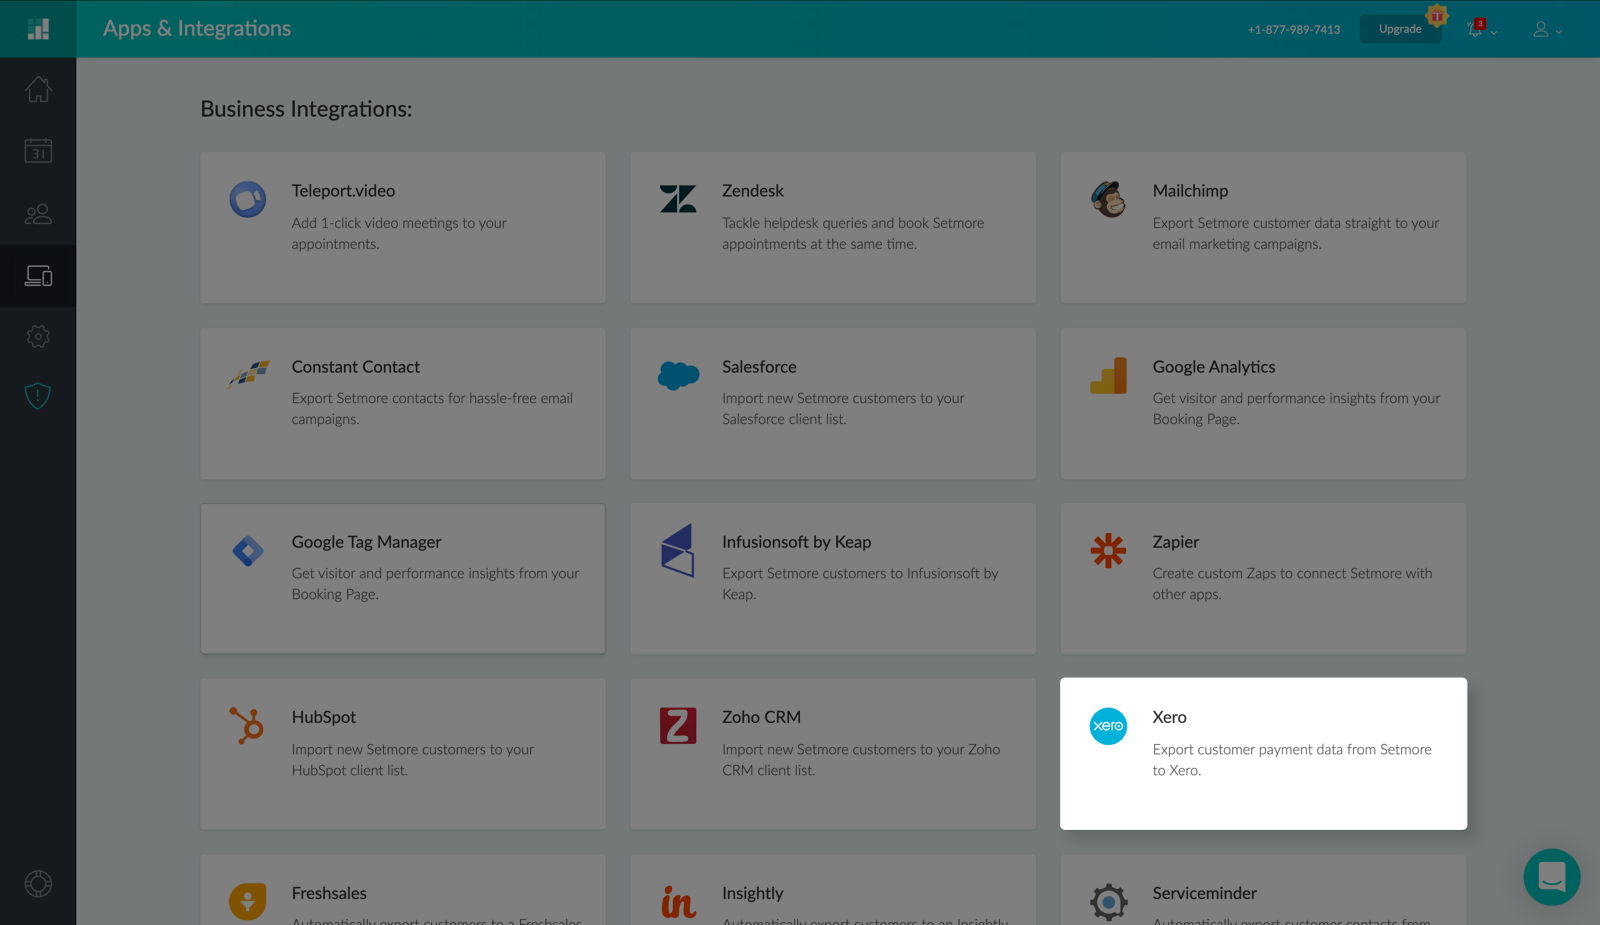 The Xero integration card under Apps & Integrations